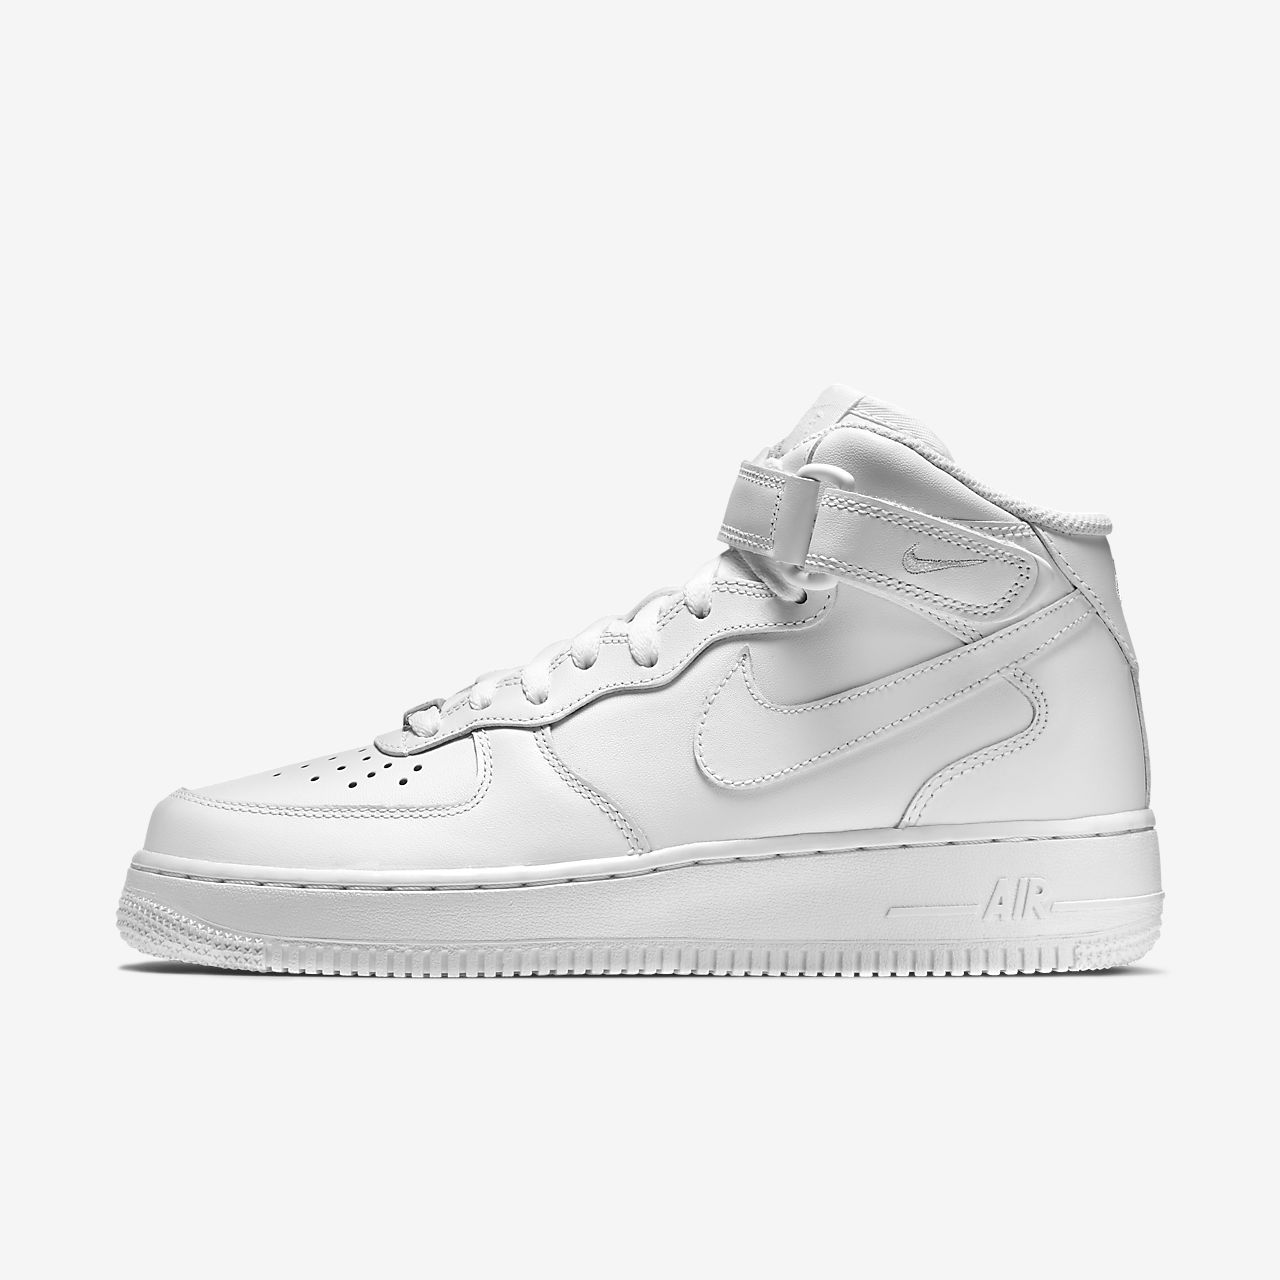 white nike air force 1 high-top sneakers women